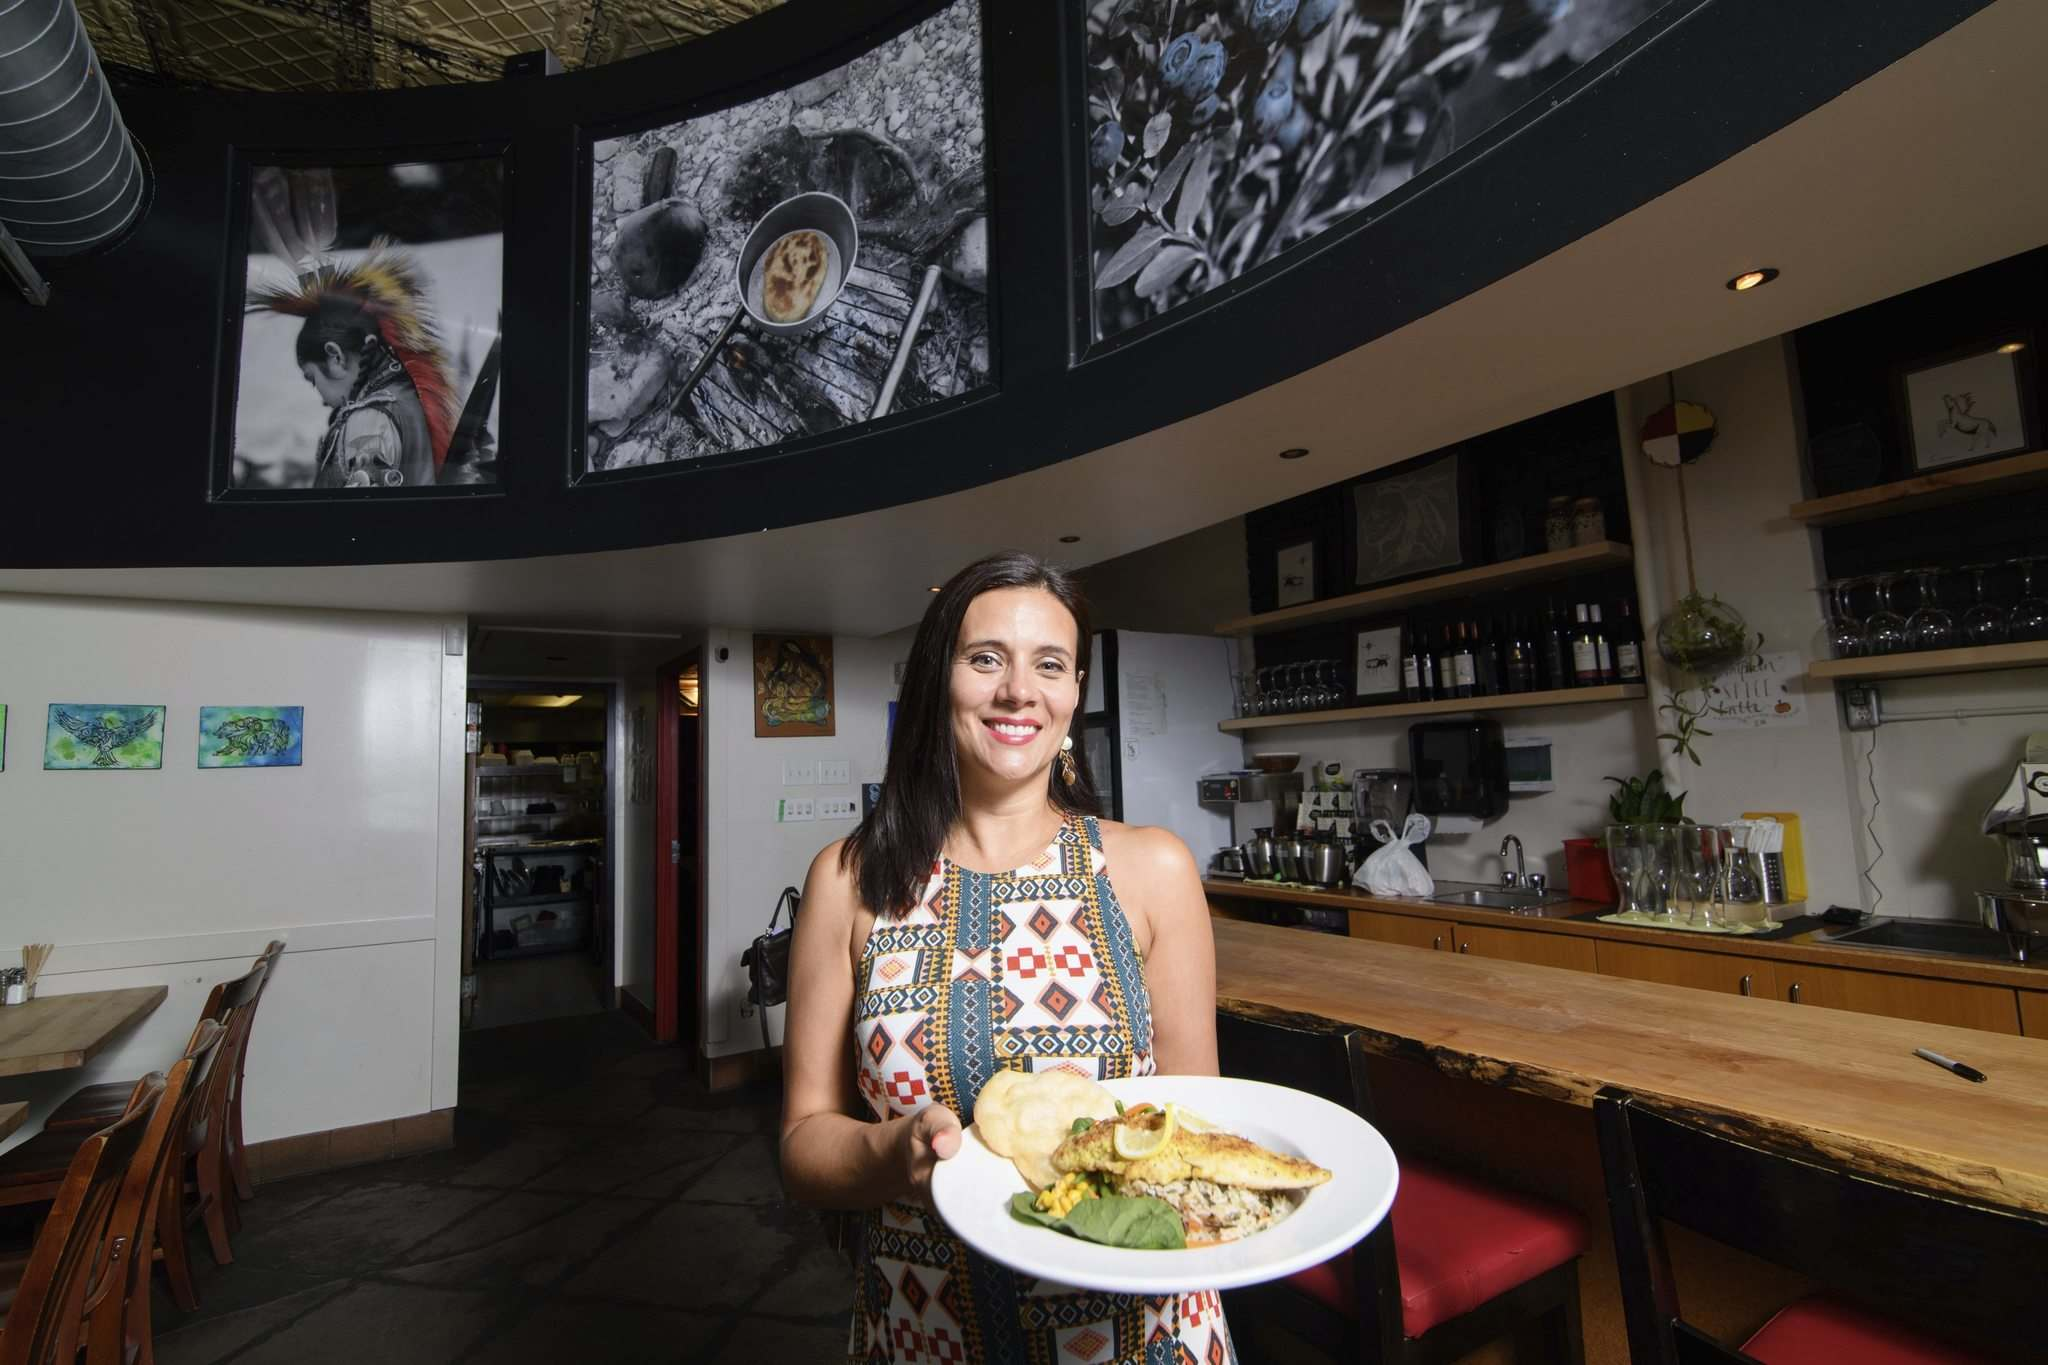 Mike Sudoma / Winnipeg Free Press files</p><p>Christa Bruneau-Guenther, owner of Feast Café Bistro, will be able to hire about five more employees thanks to federal funding coming her way. She says staff is her biggest expense.</p></p>